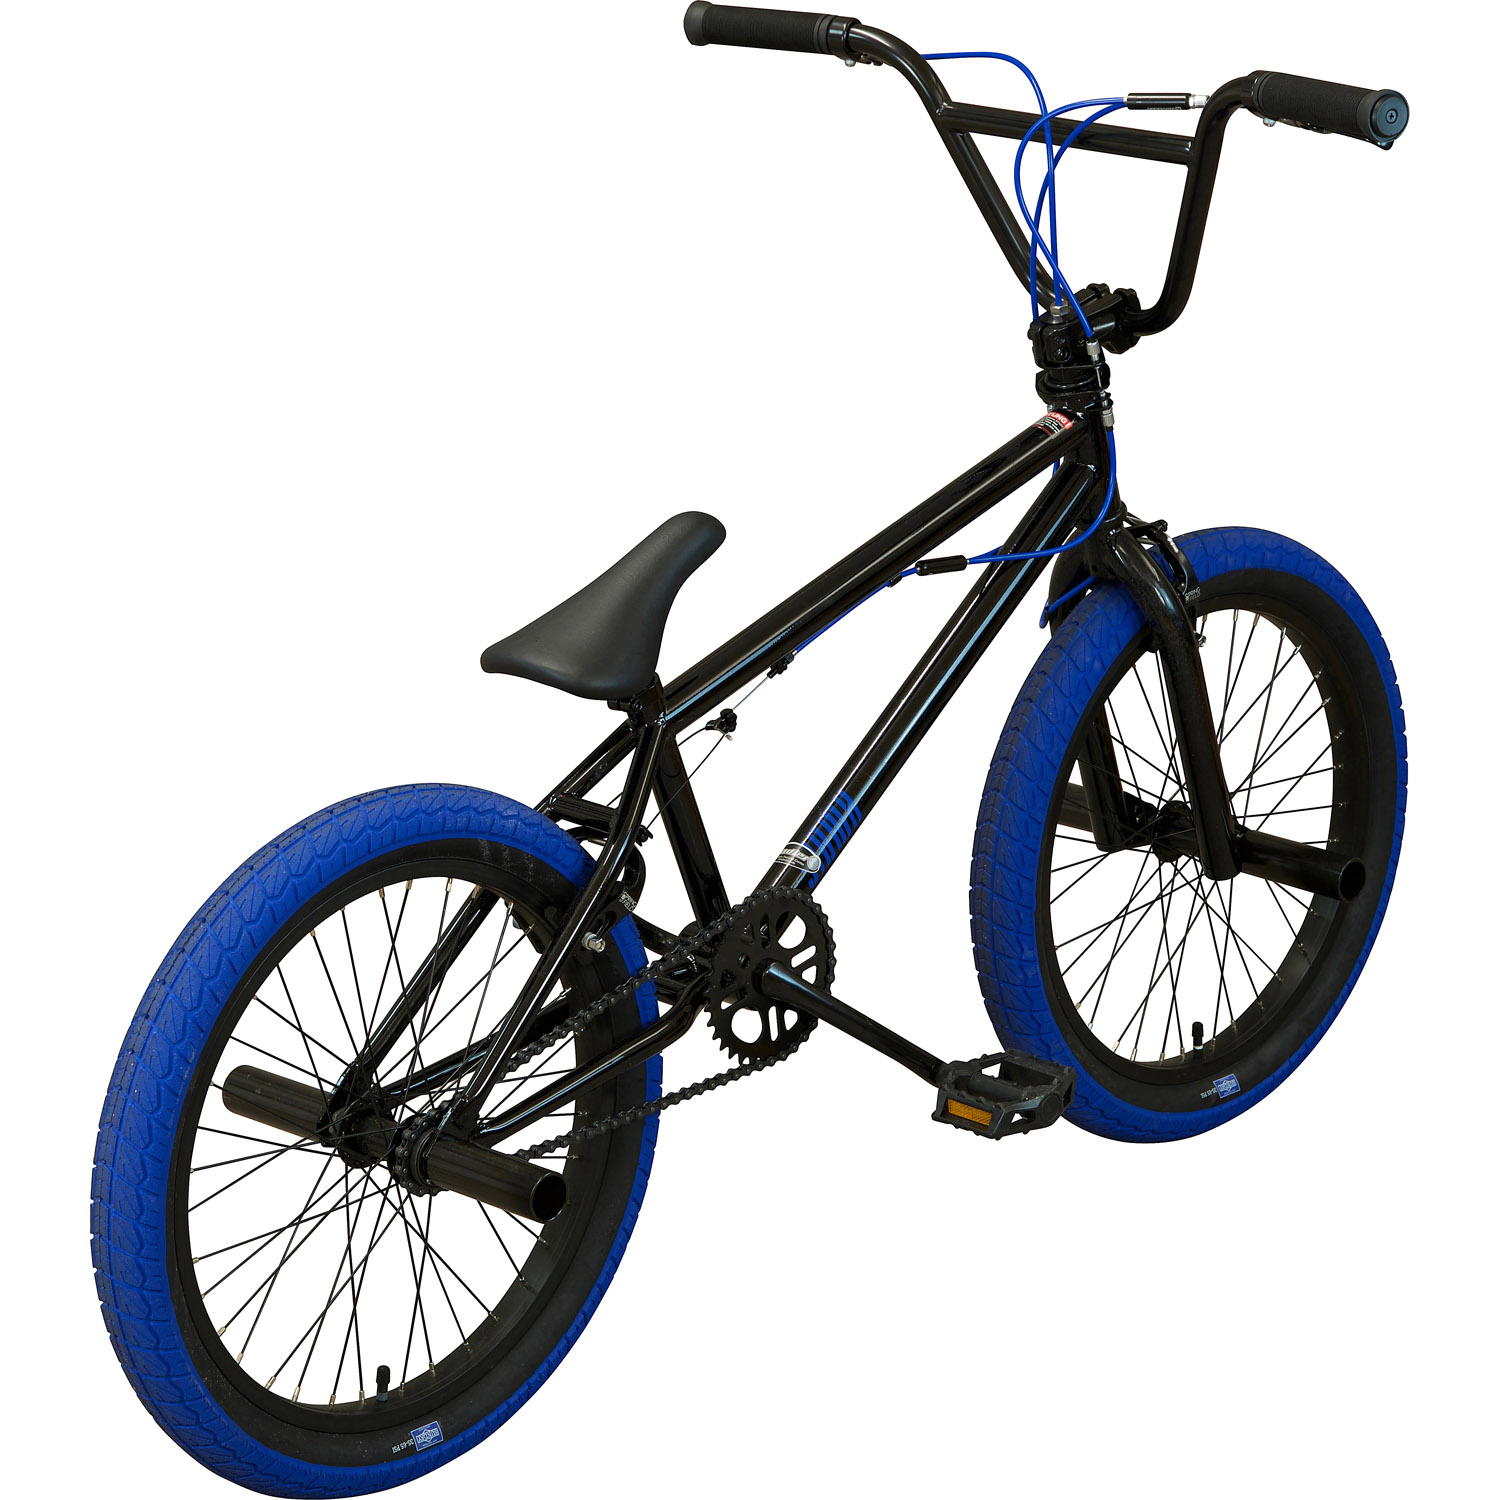 sibmx fs 1 bmx bike 20 zoll online shop zweirad stadler. Black Bedroom Furniture Sets. Home Design Ideas